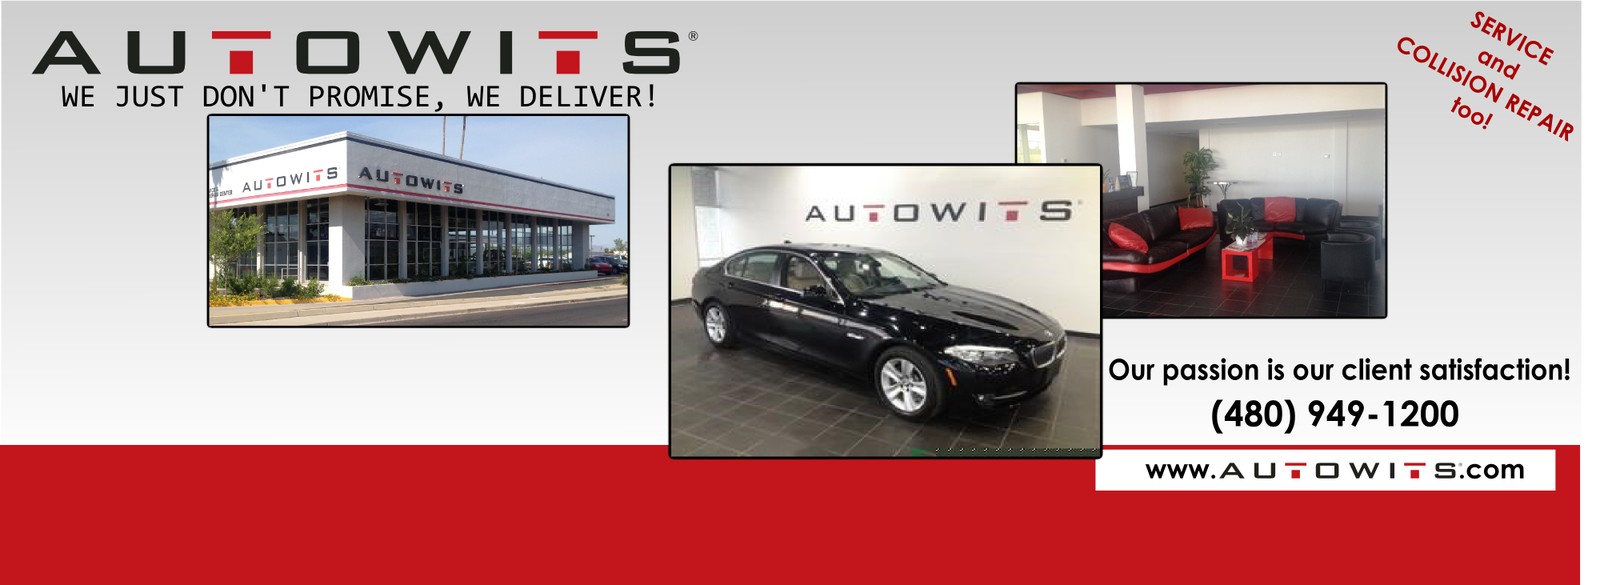 Autowits Scottsdale Az Read Consumer Reviews Browse Used And New Cars For Sale